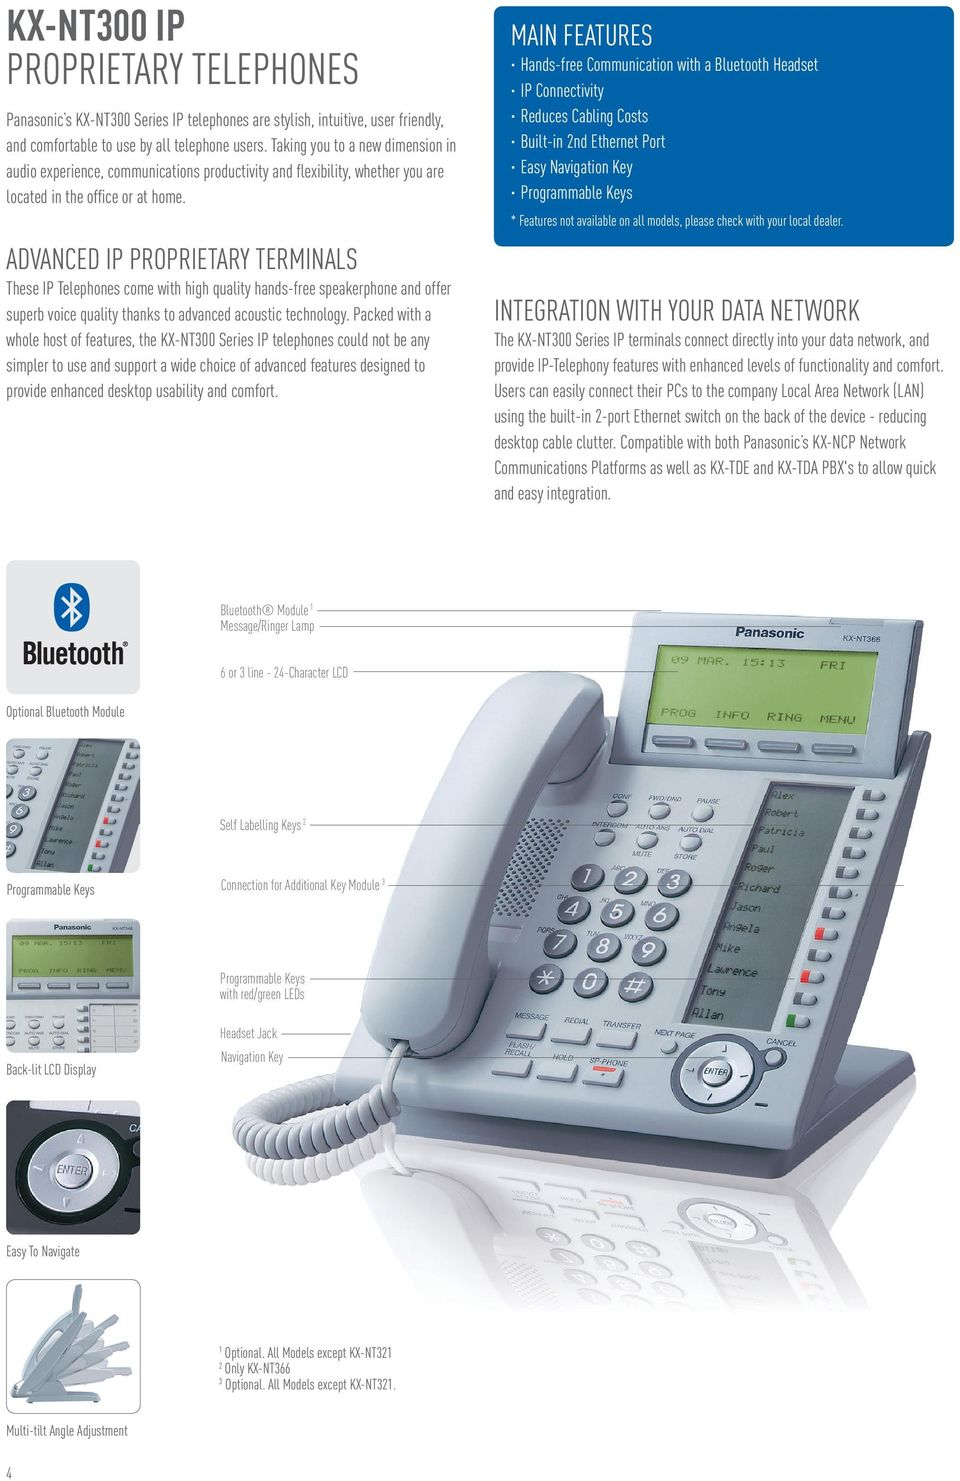 ADVANCED IP PROPRIETARY TERMINALS These IP Telephones come with high quality hands-free speakerphone and offer superb voice quality thanks to advanced acoustic technology.